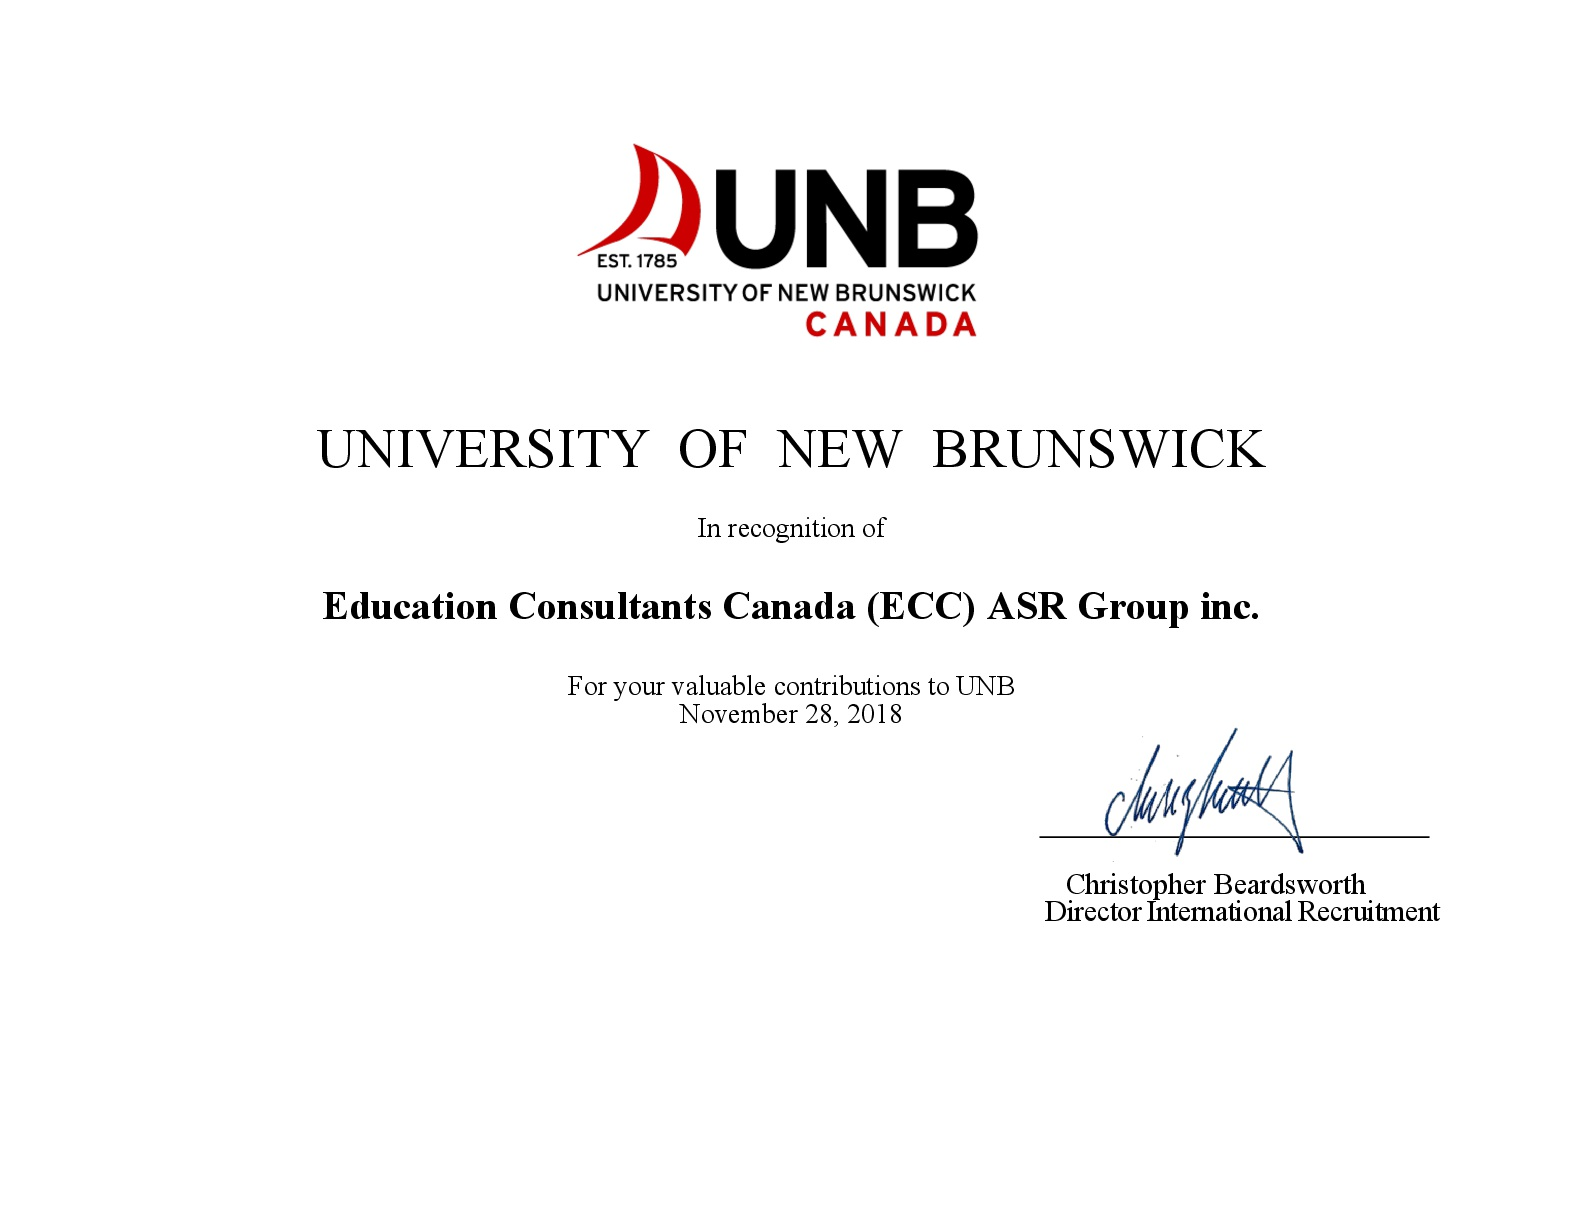 Education Consultants Canada Authorized recruiter of the University of New Brunswick for international students recruitment